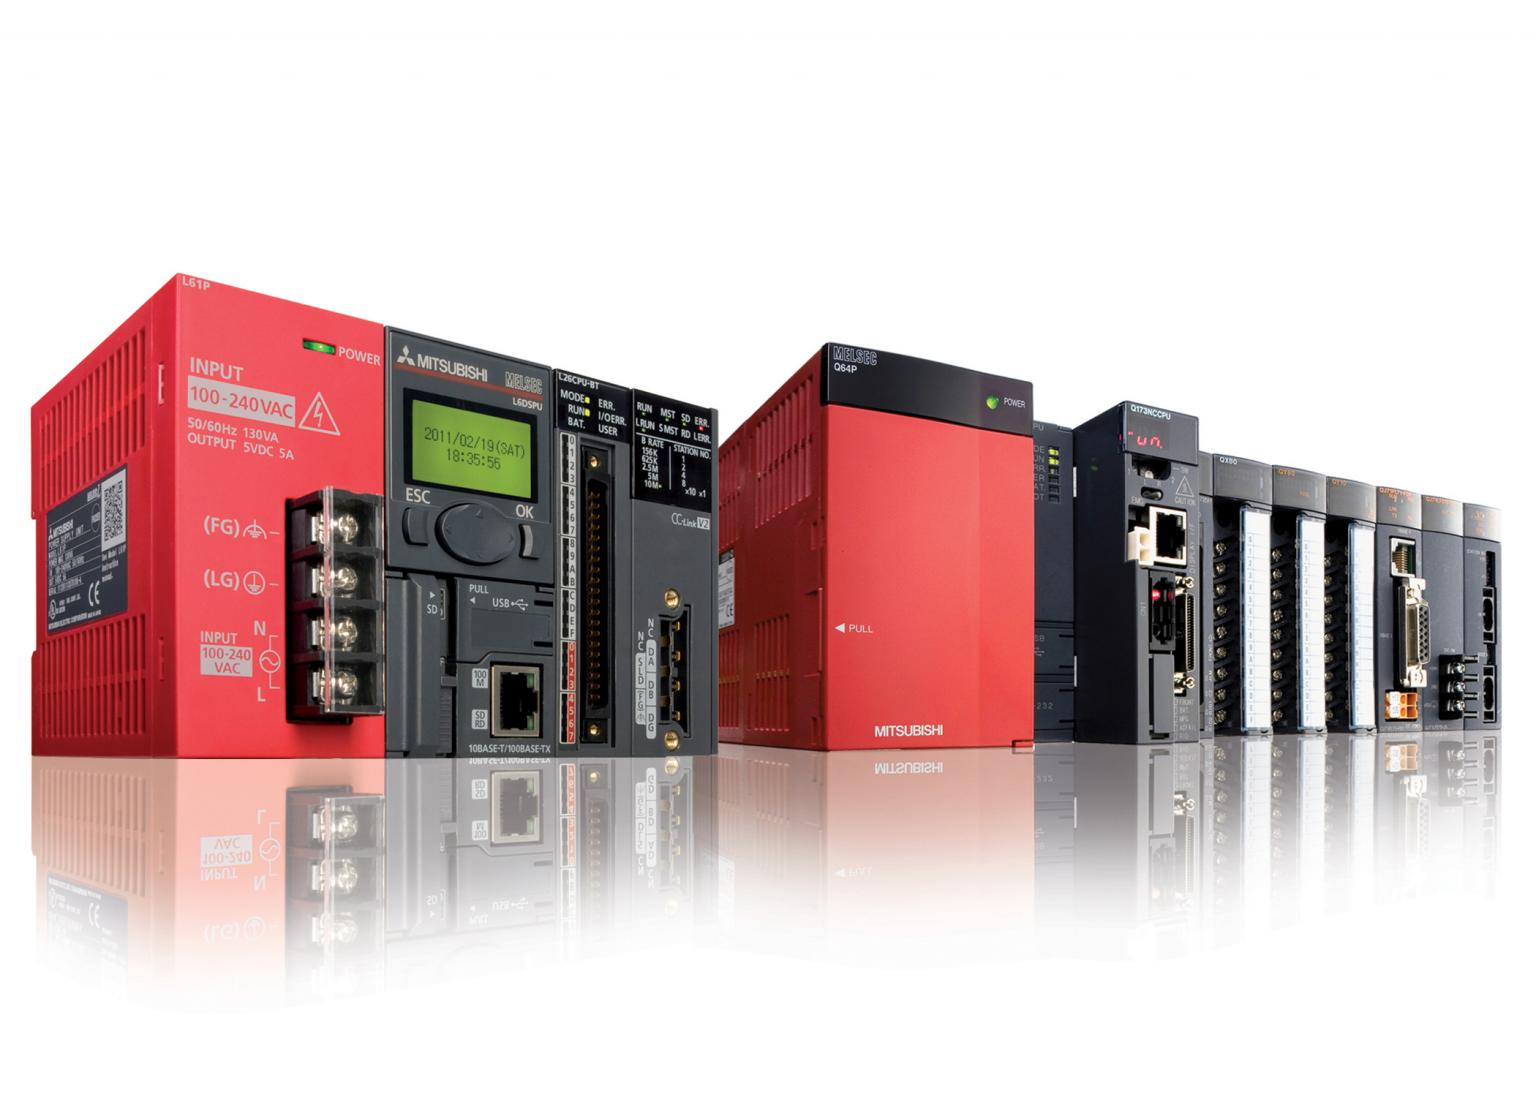 The Mitsubishi Electric M2M solution is built on the MAPS SCADA software and Mitsubishi FX/L/Q series PLCs, for both control and data acquisition, to and from remote sites